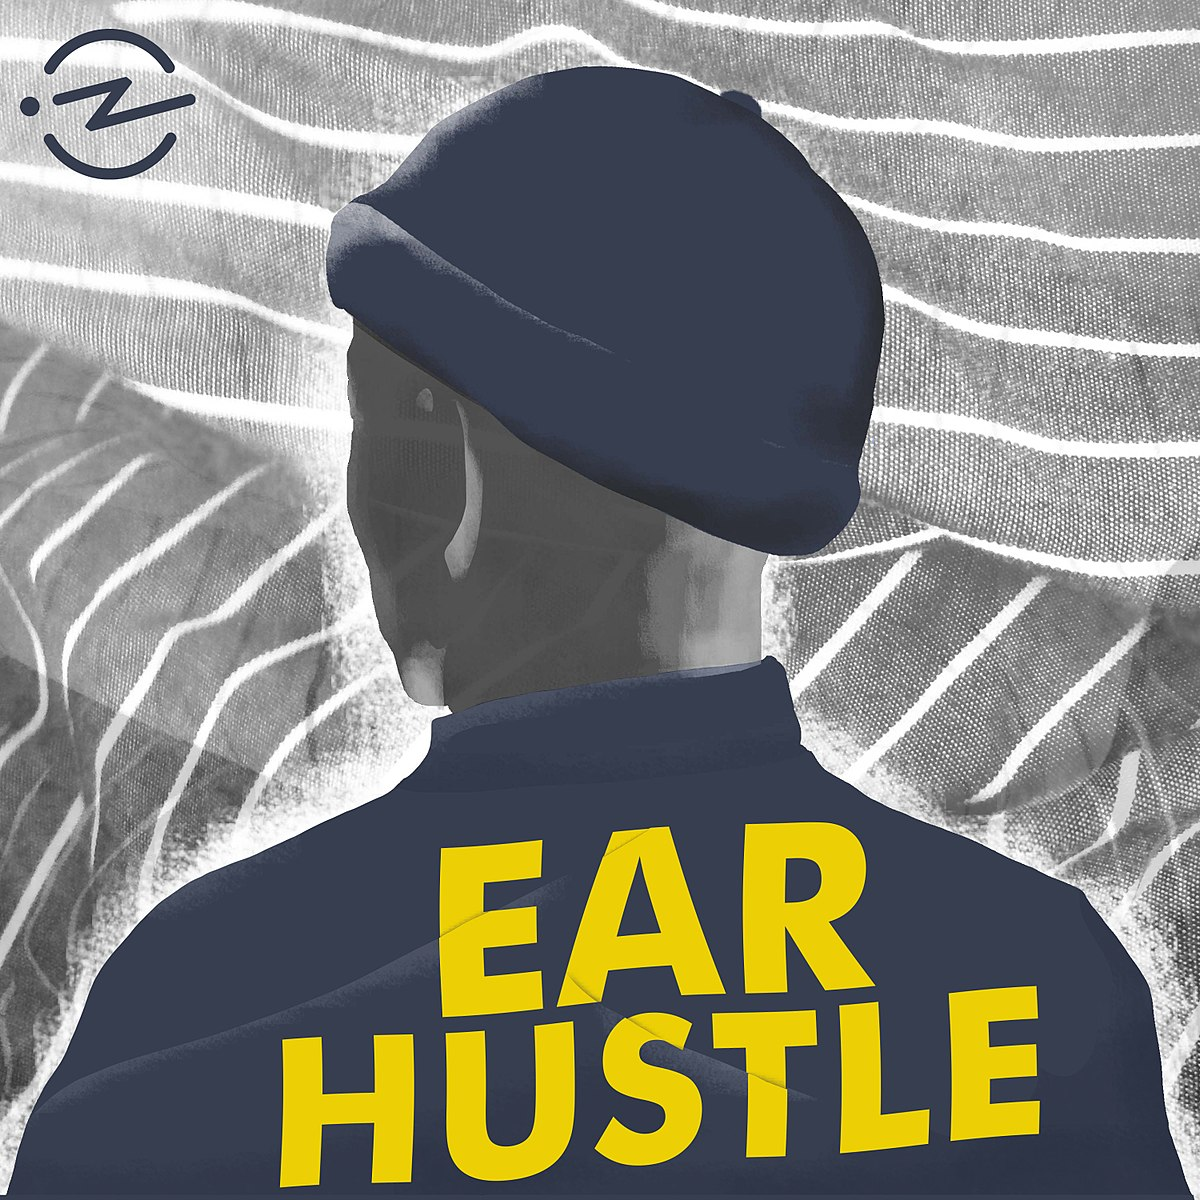 ear hustle wikipedia